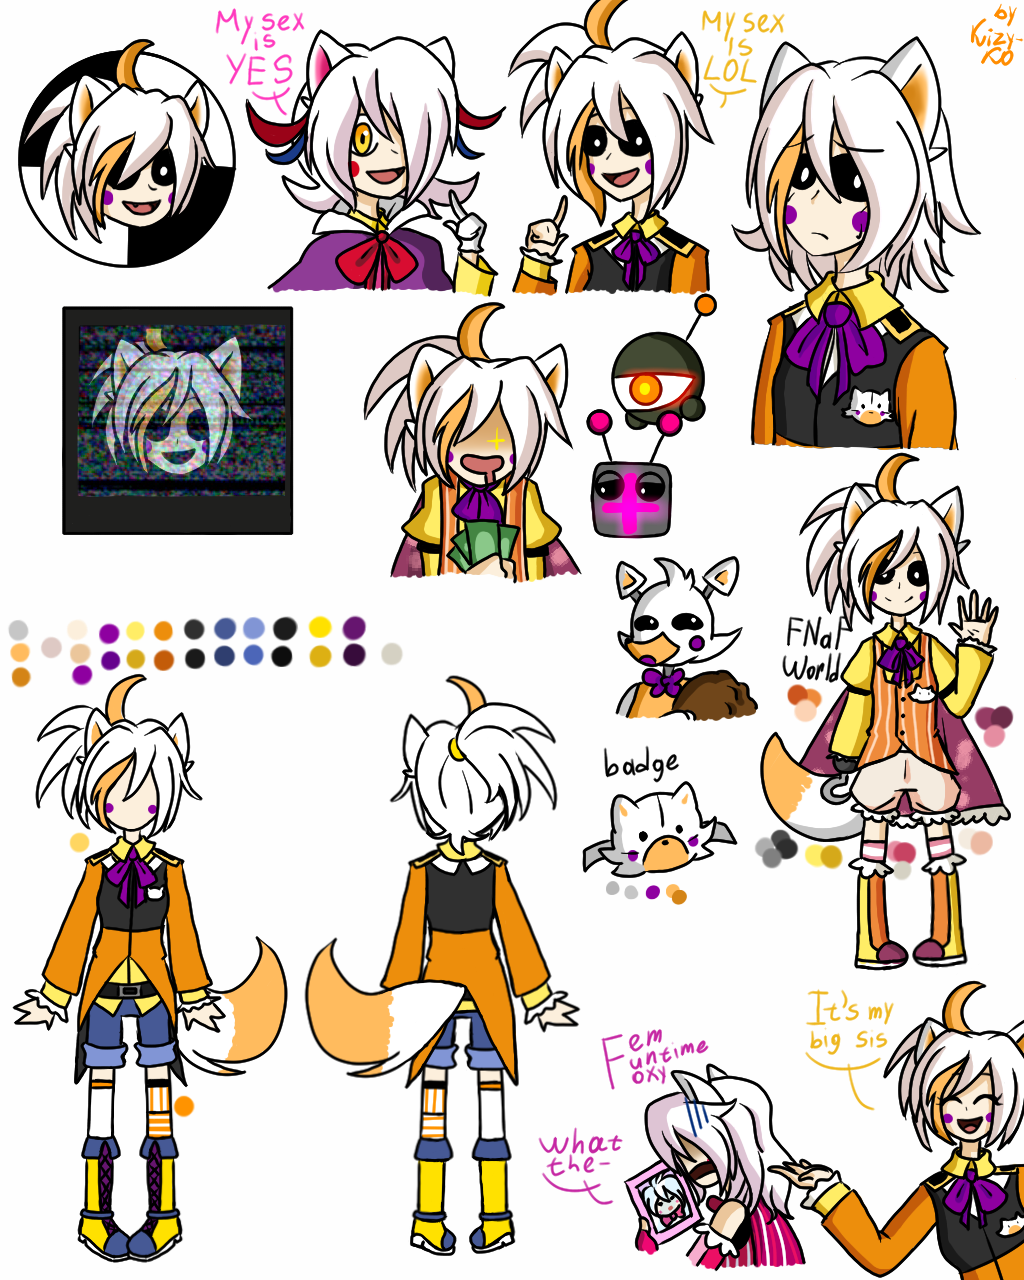 "Here clipart reference Reference it :"") like with"